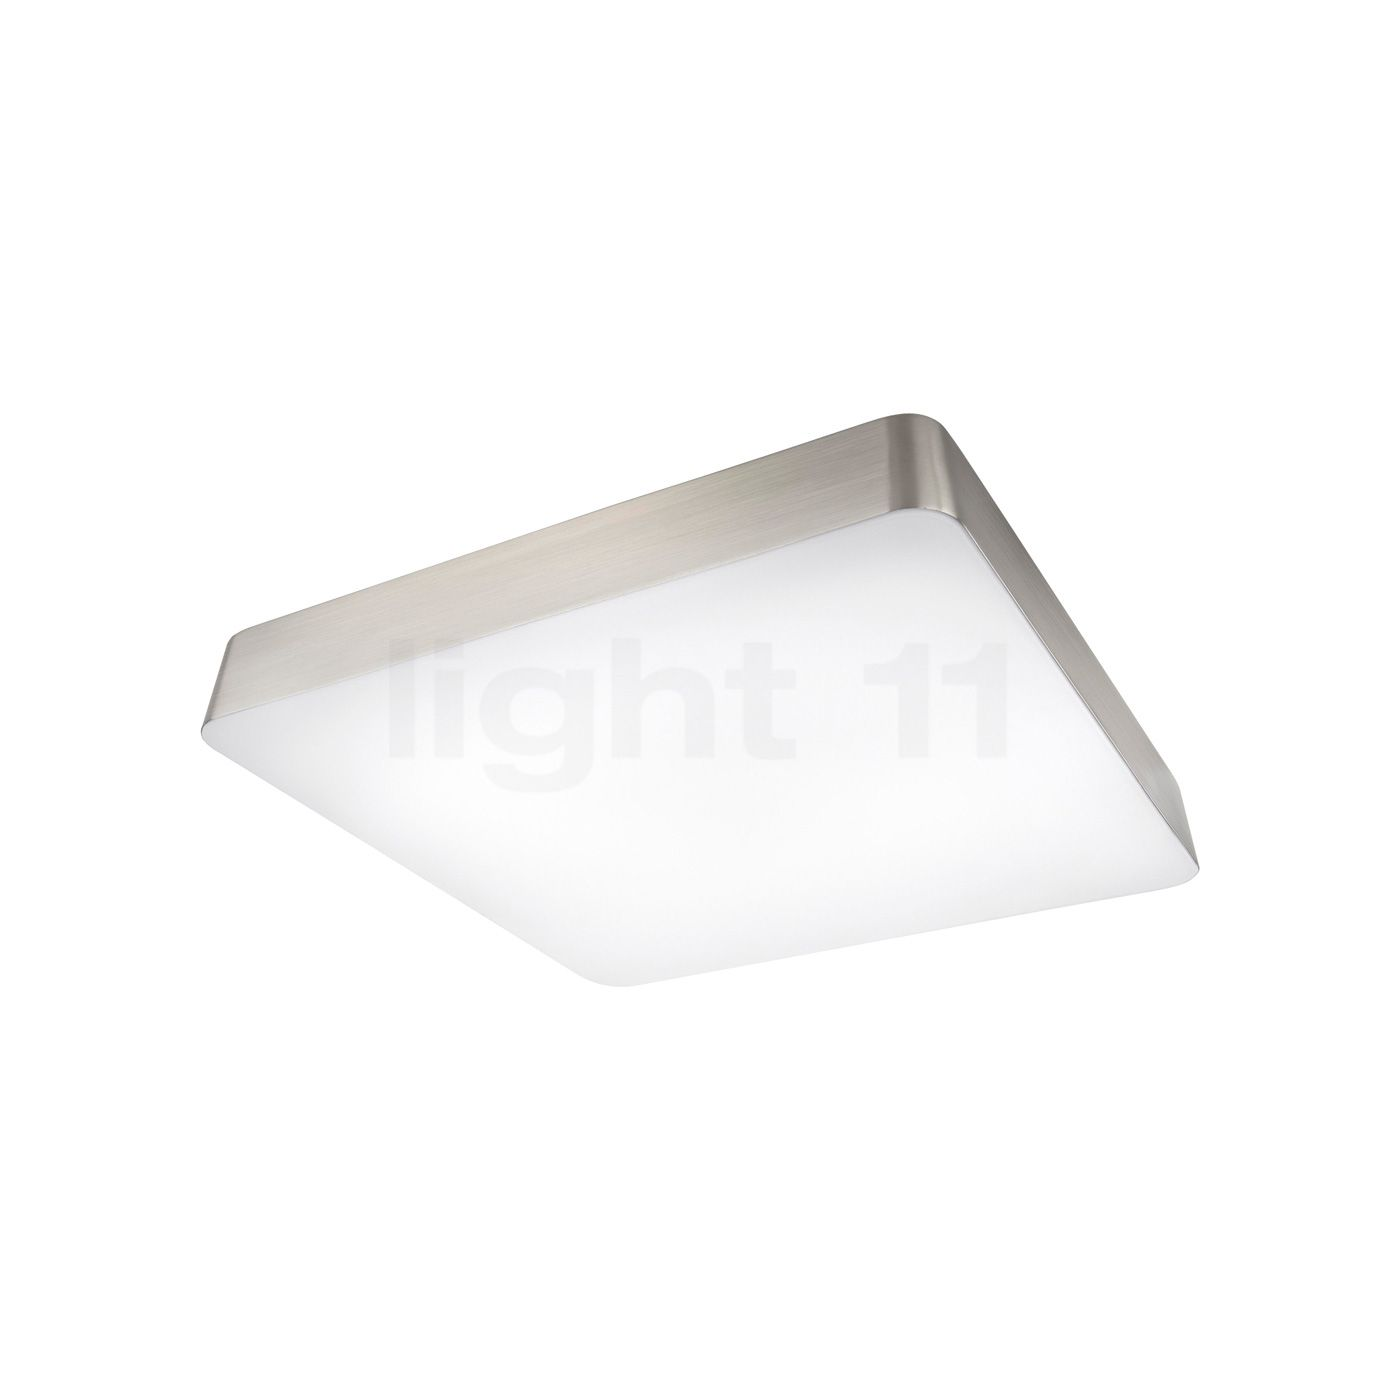 Buy philips instyle plano ceiling light at light11 mozeypictures Choice Image